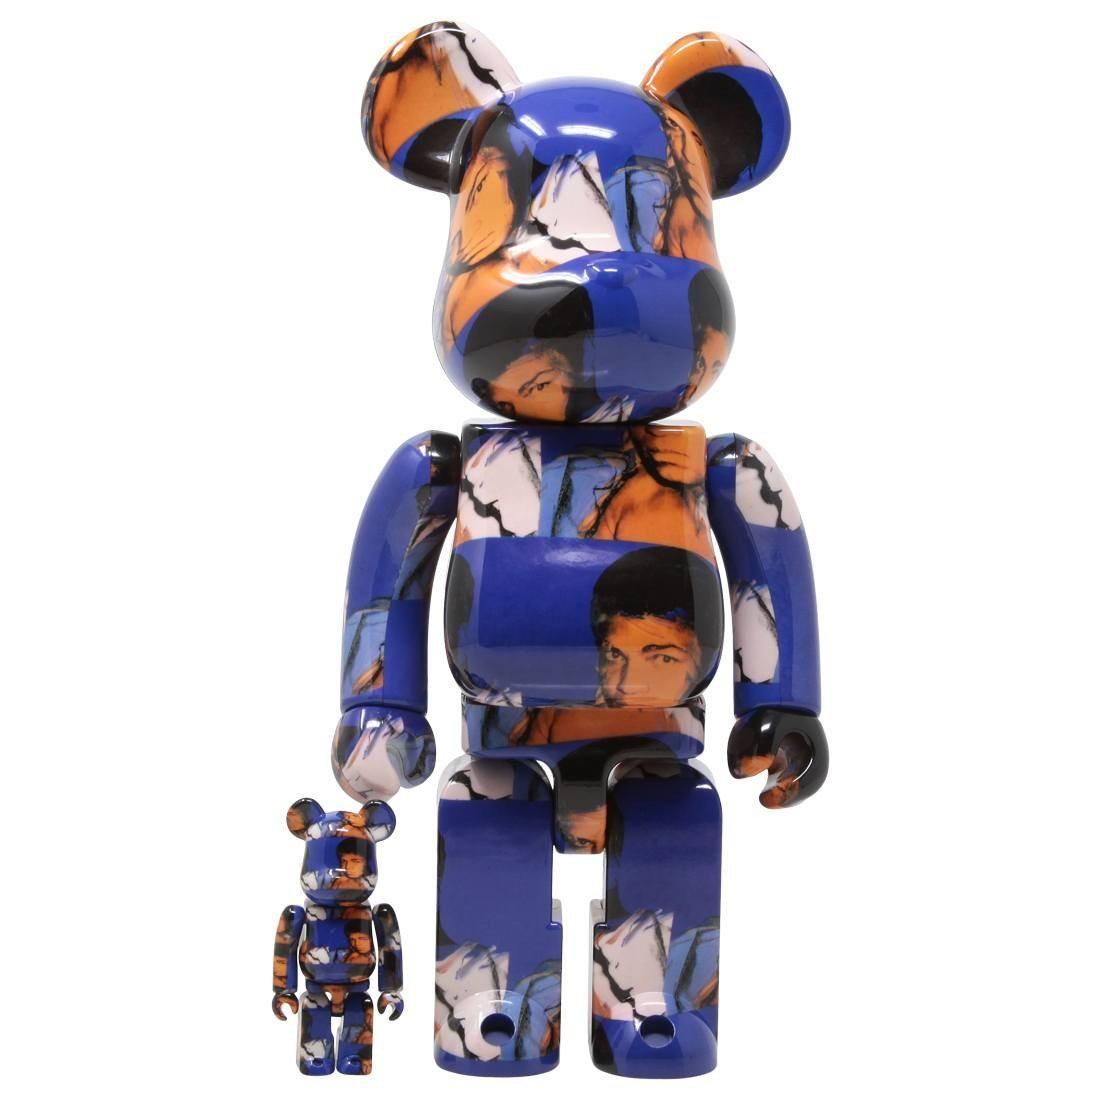 MEDICOM ANDY WARHOL MUHAMMAD ALI 100% 400% BEARBRICK FIGURE SET (BLUE) | Waves Never Die | Medicom | Toy